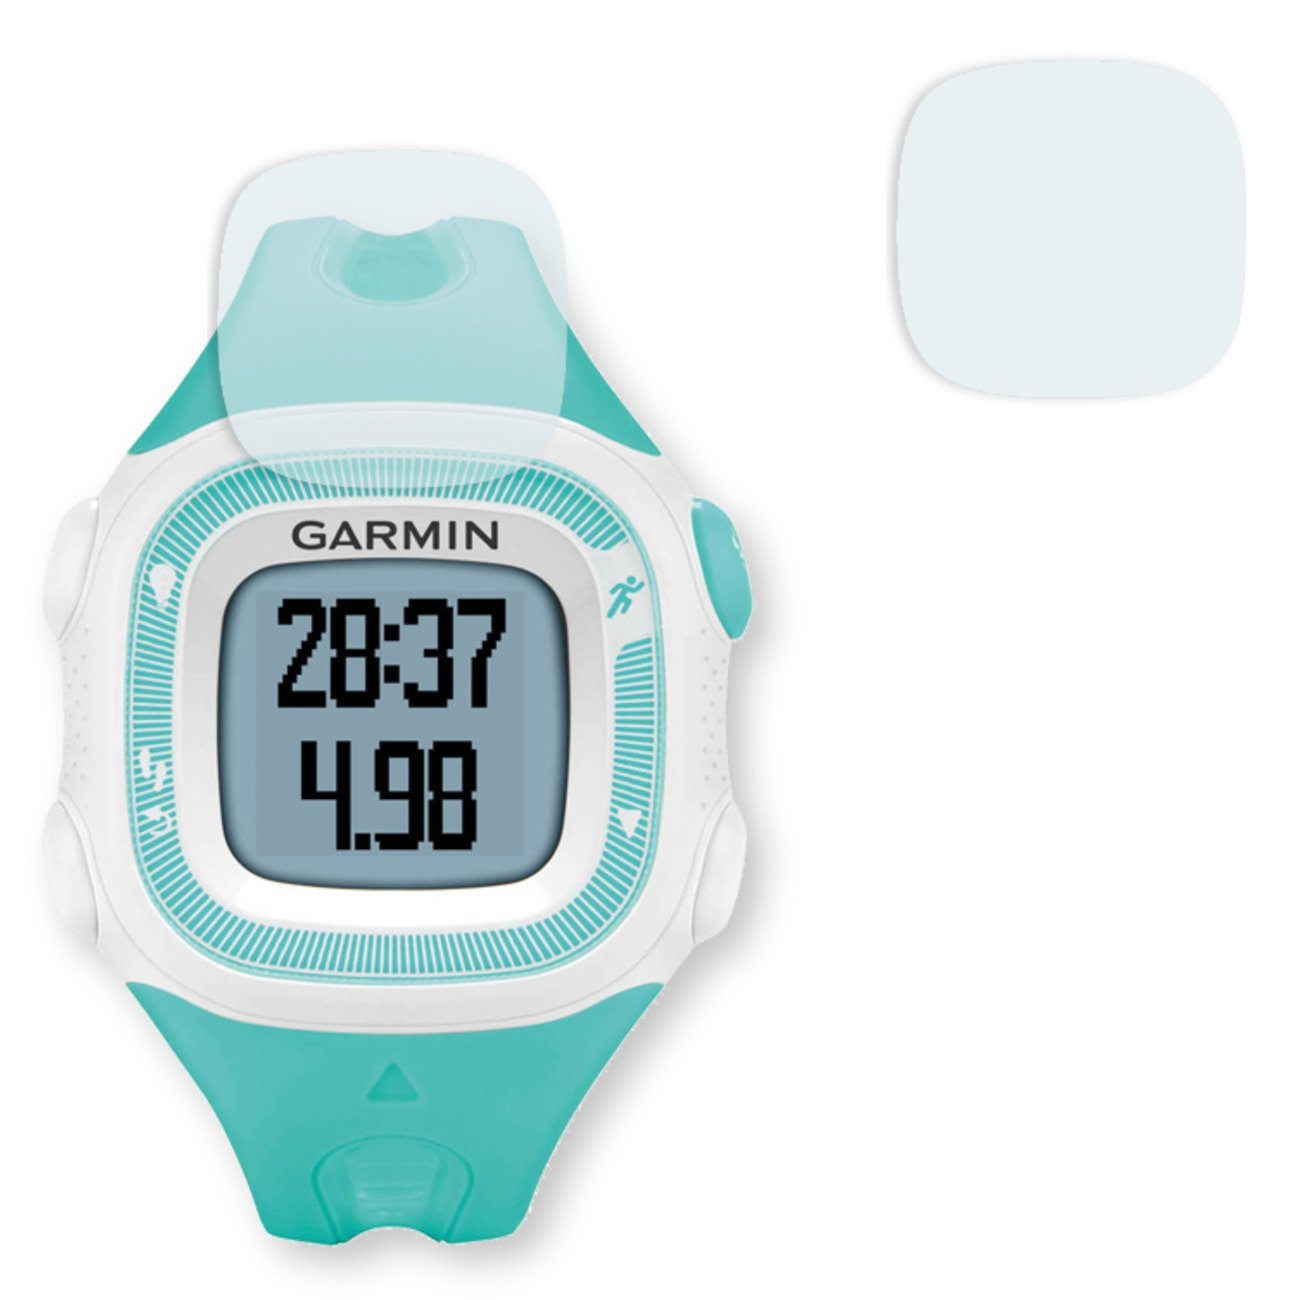 GOLEBO 2X Crystal Clear Screen Protector for Garmin Forerunner 15 S - (Transparent Screen Protector, Air Pocket Free Application, Easy to Remove)